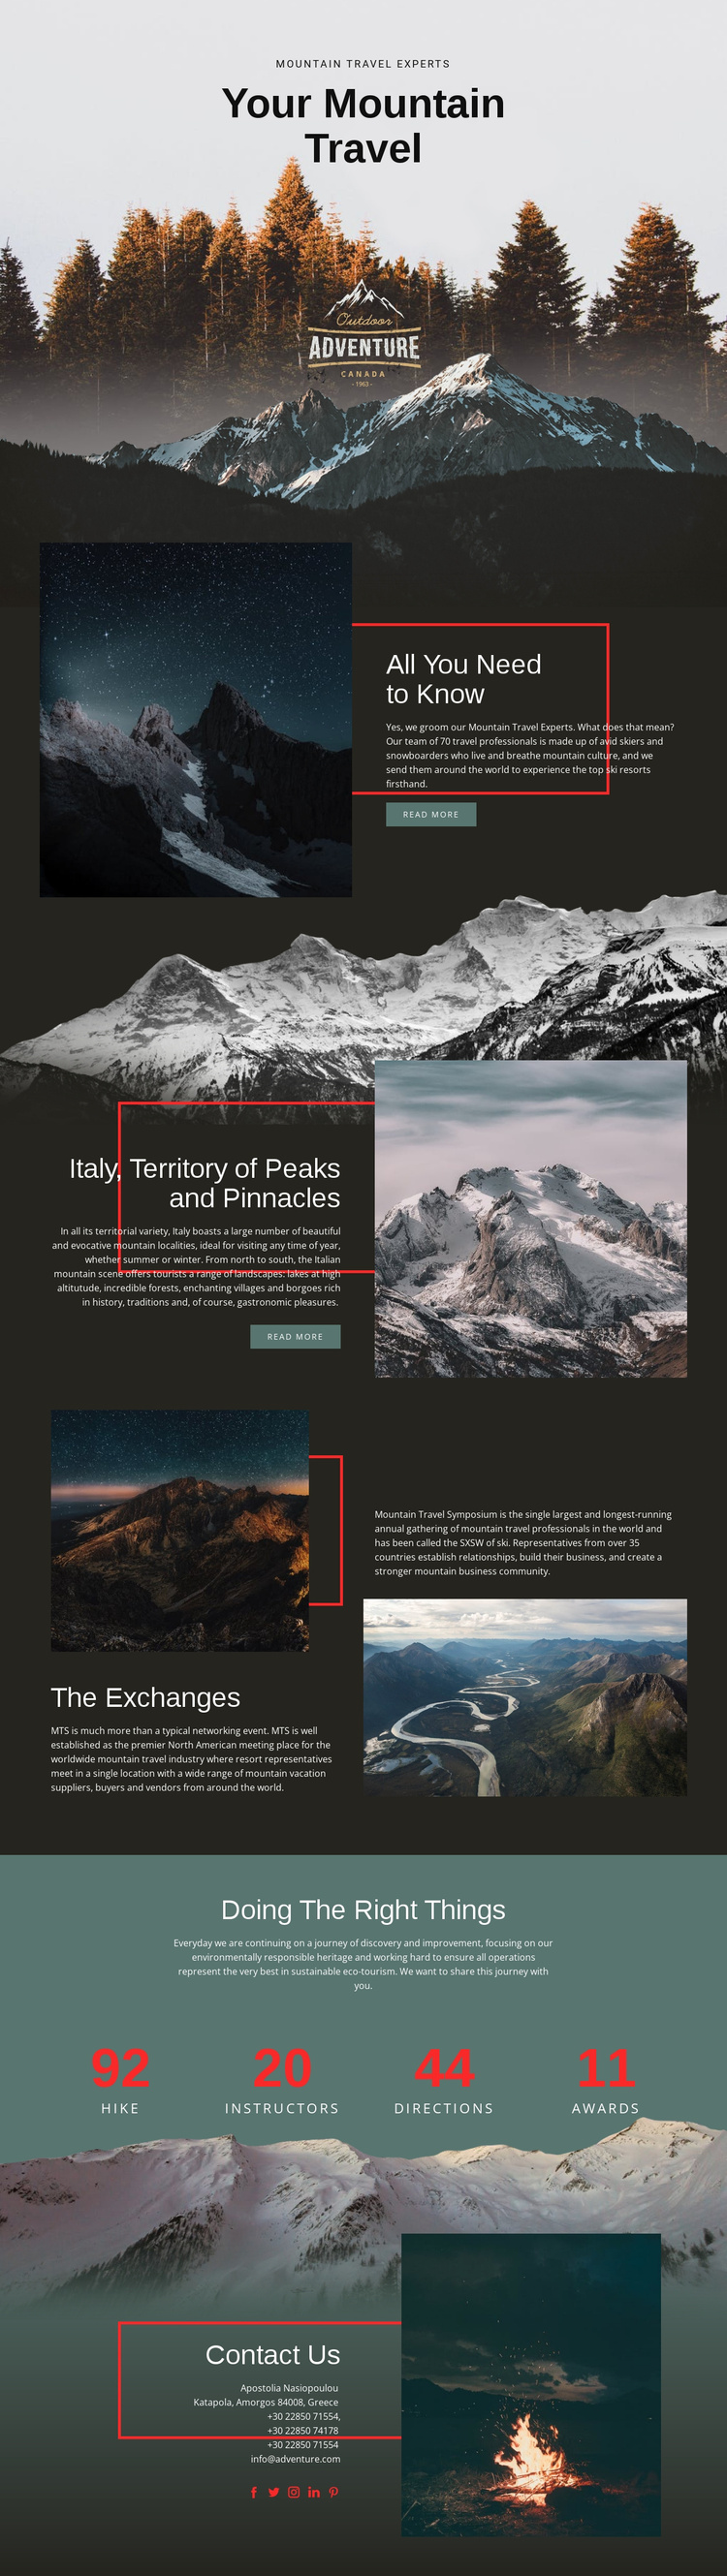 All about mountain travel Joomla Template